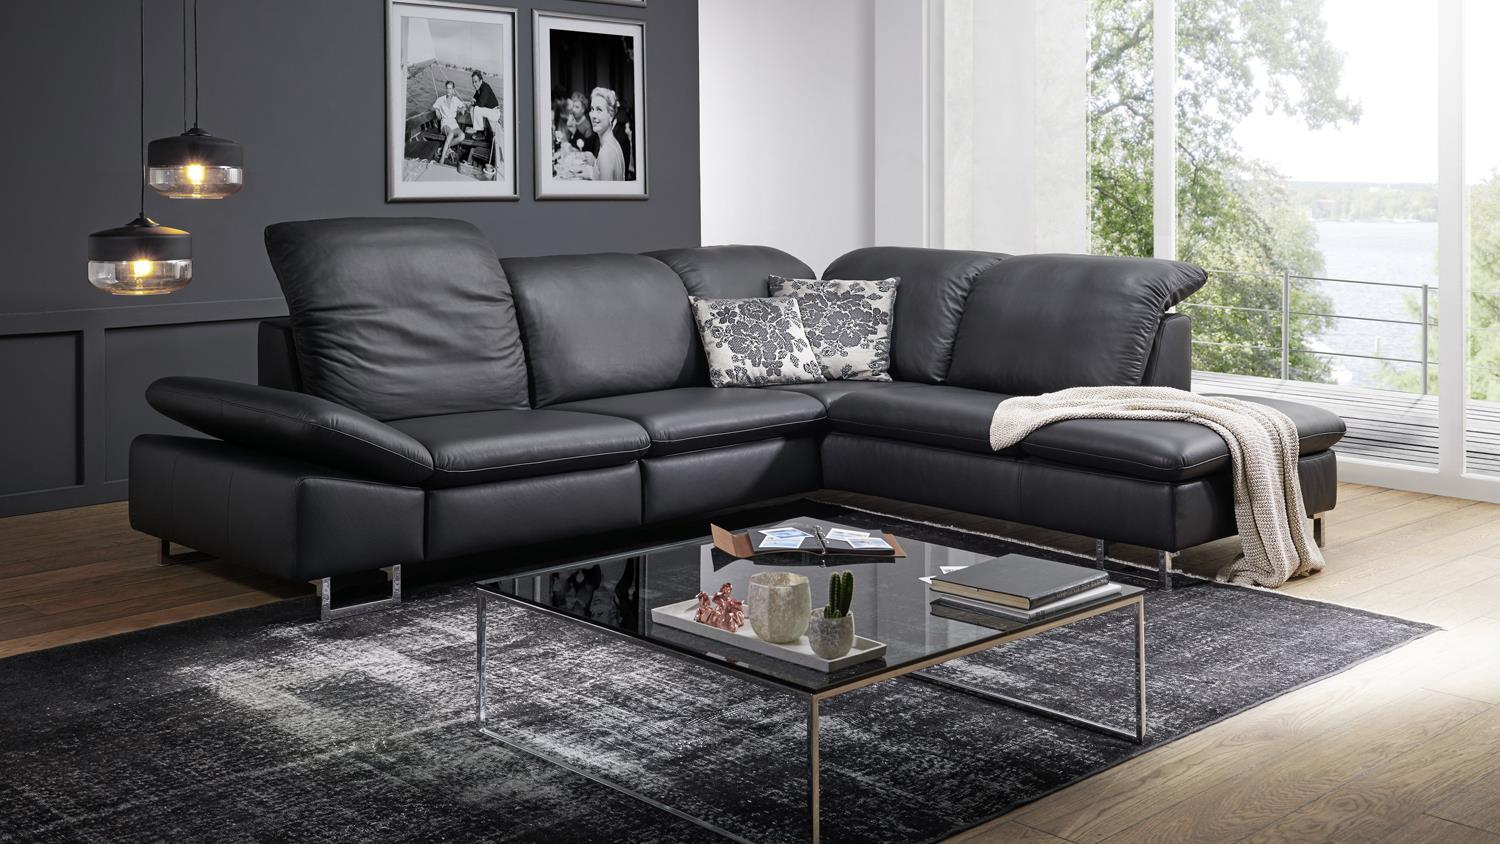 ecksofa enjoy relax bezug leder schwarz f e metall mit. Black Bedroom Furniture Sets. Home Design Ideas